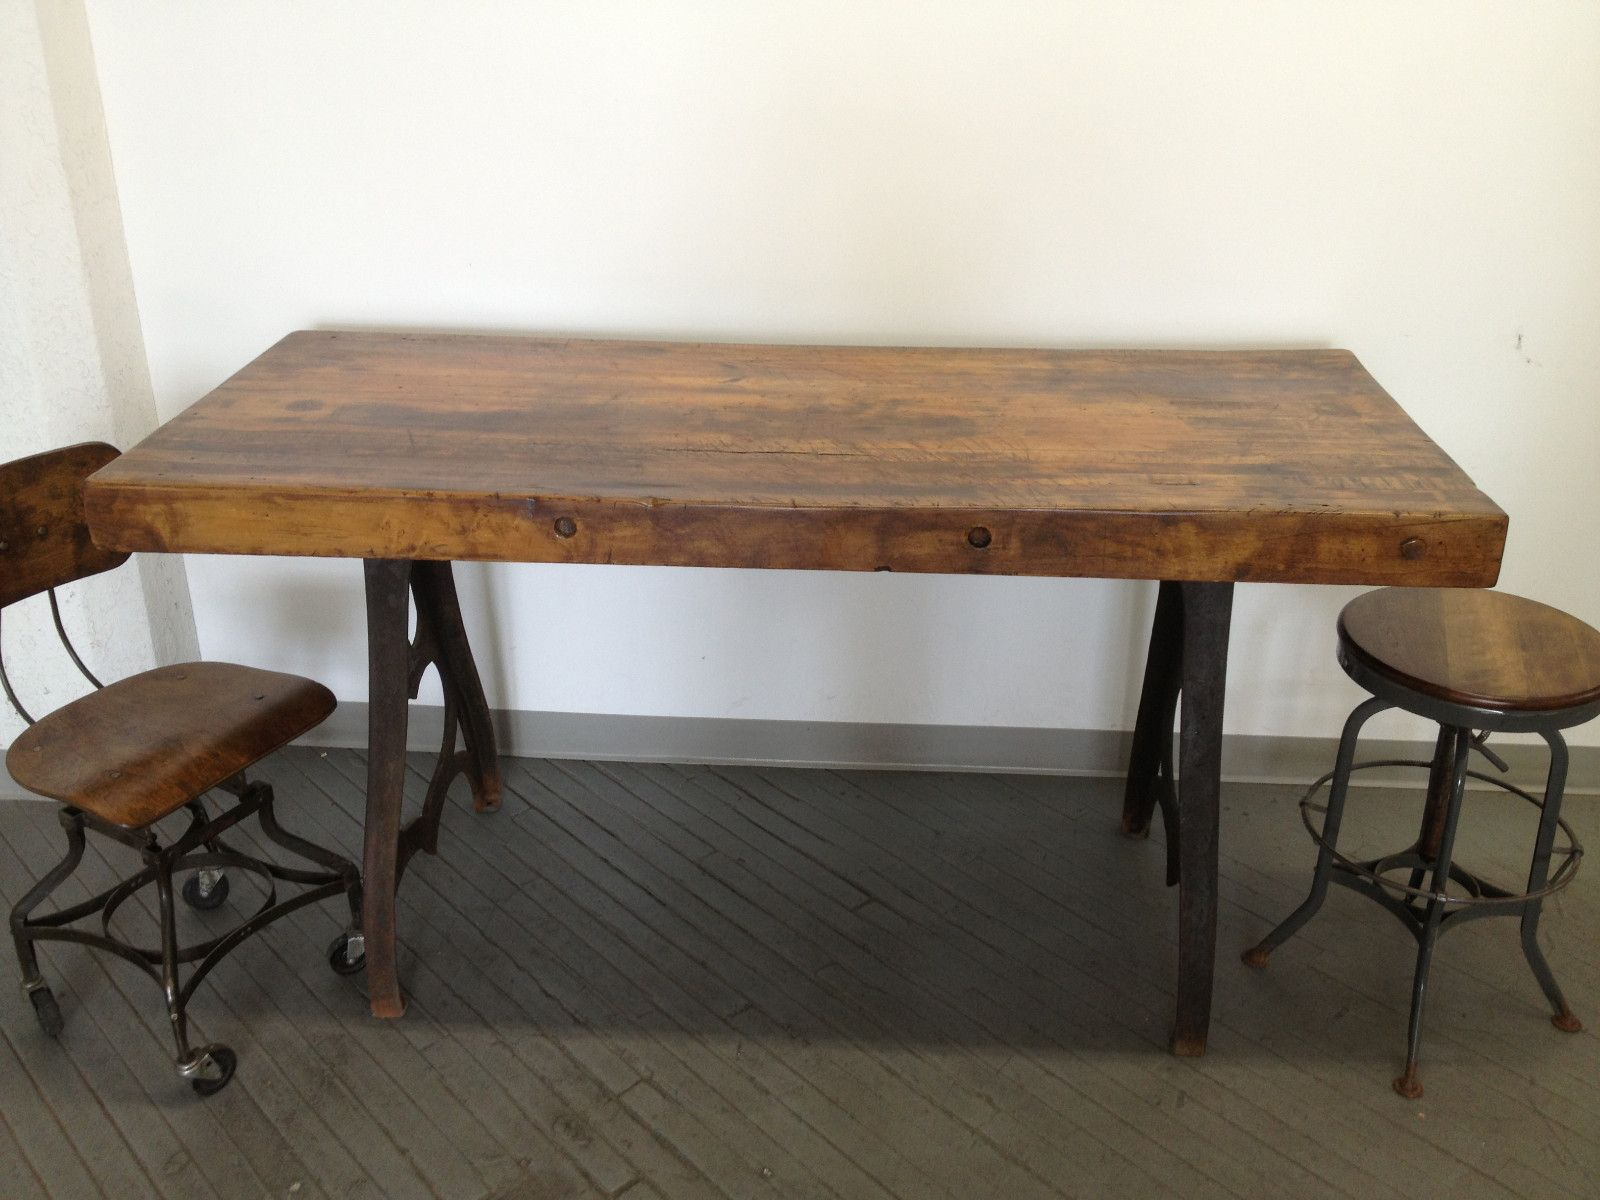 butcher block kitchen table Vintage Industrial Dining Table Cast Iron Bakers Butcher Block Factory 6 Desk